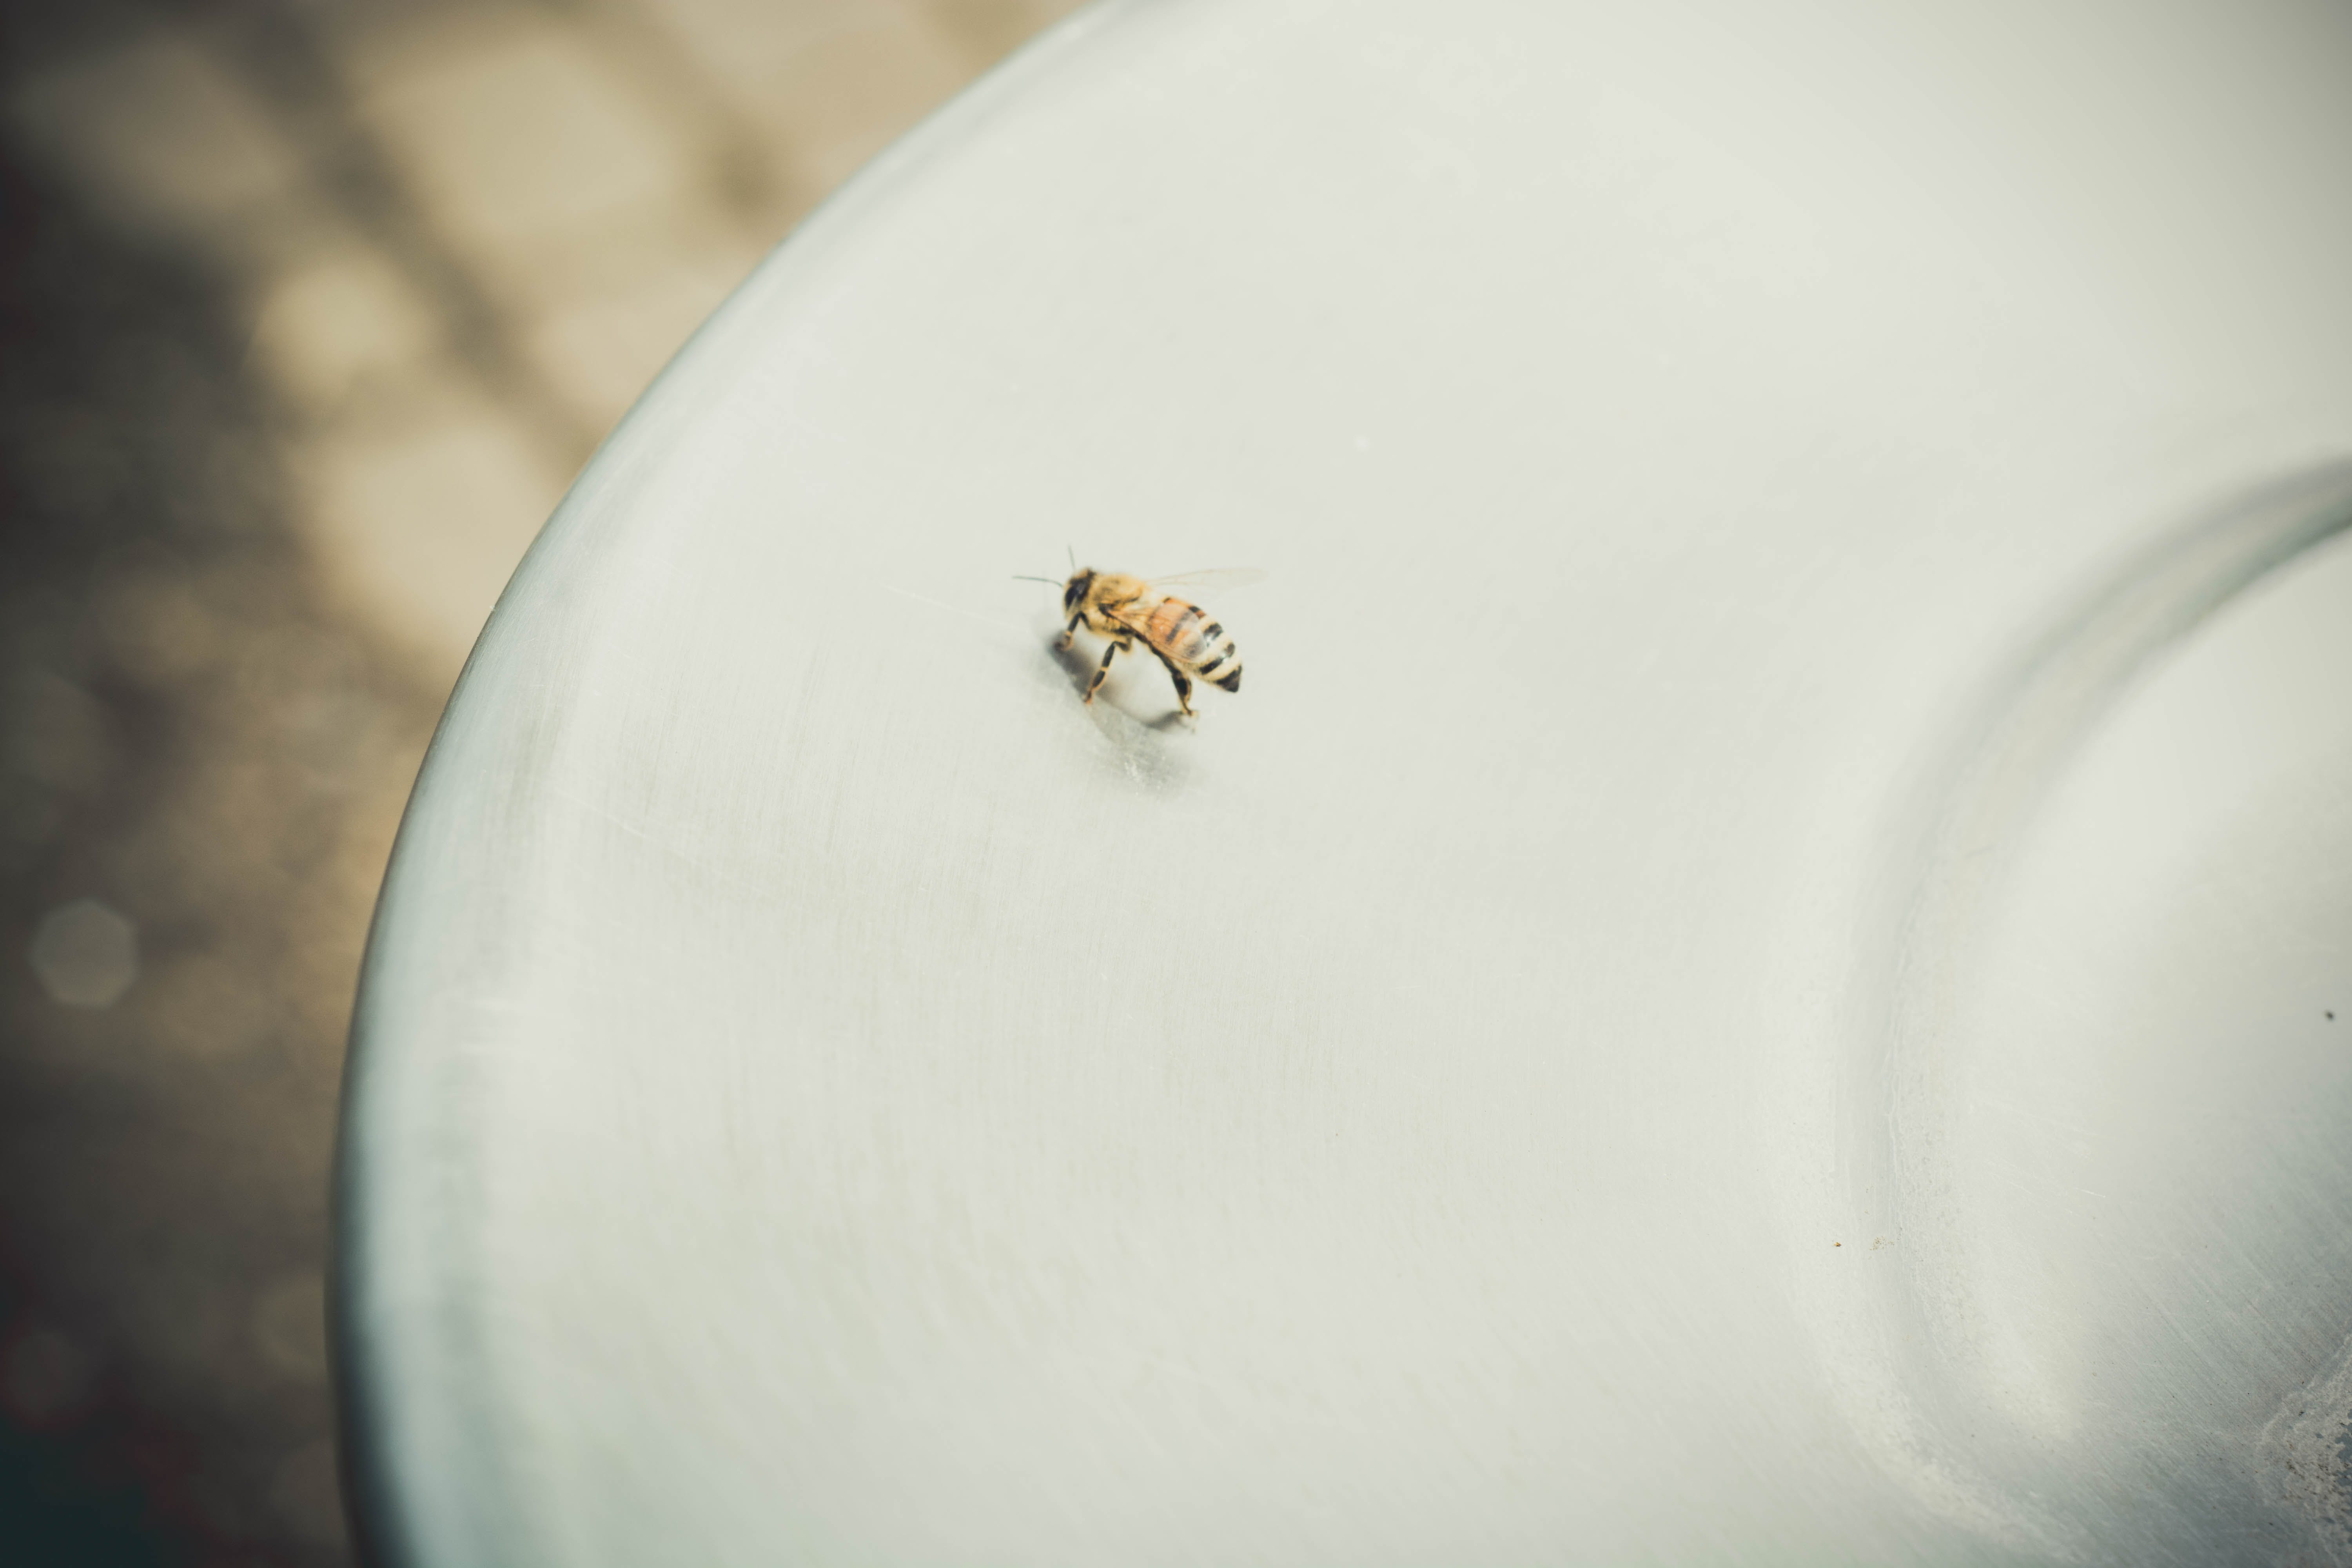 Honeybee on White Surface